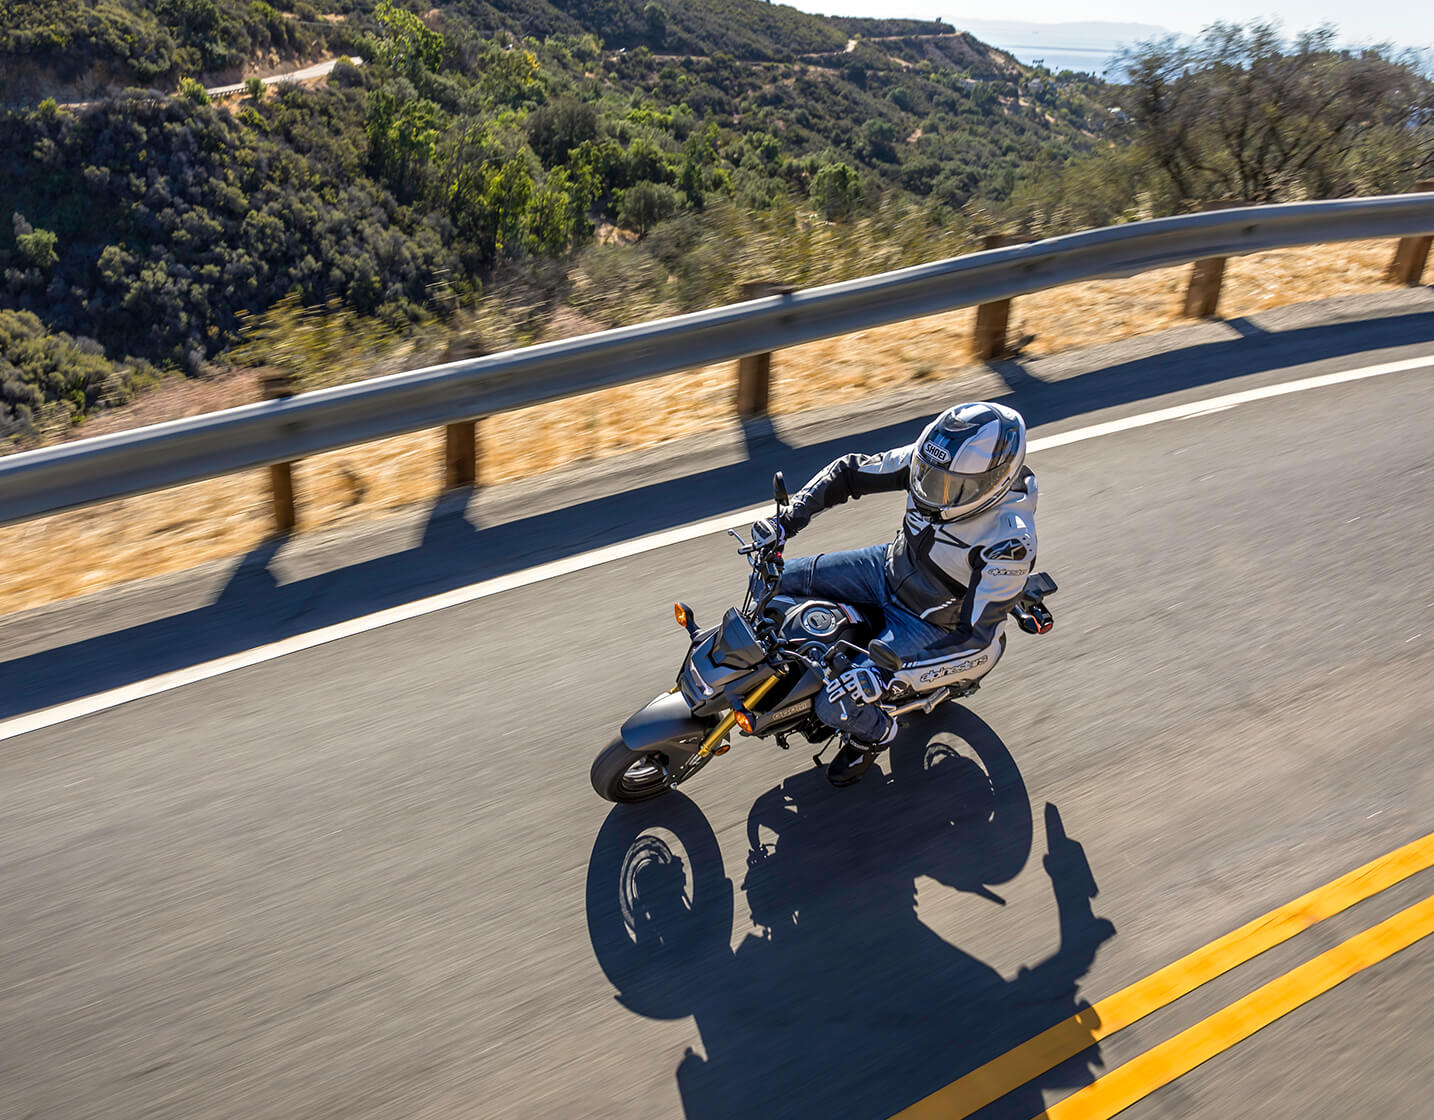 Grom demo rides